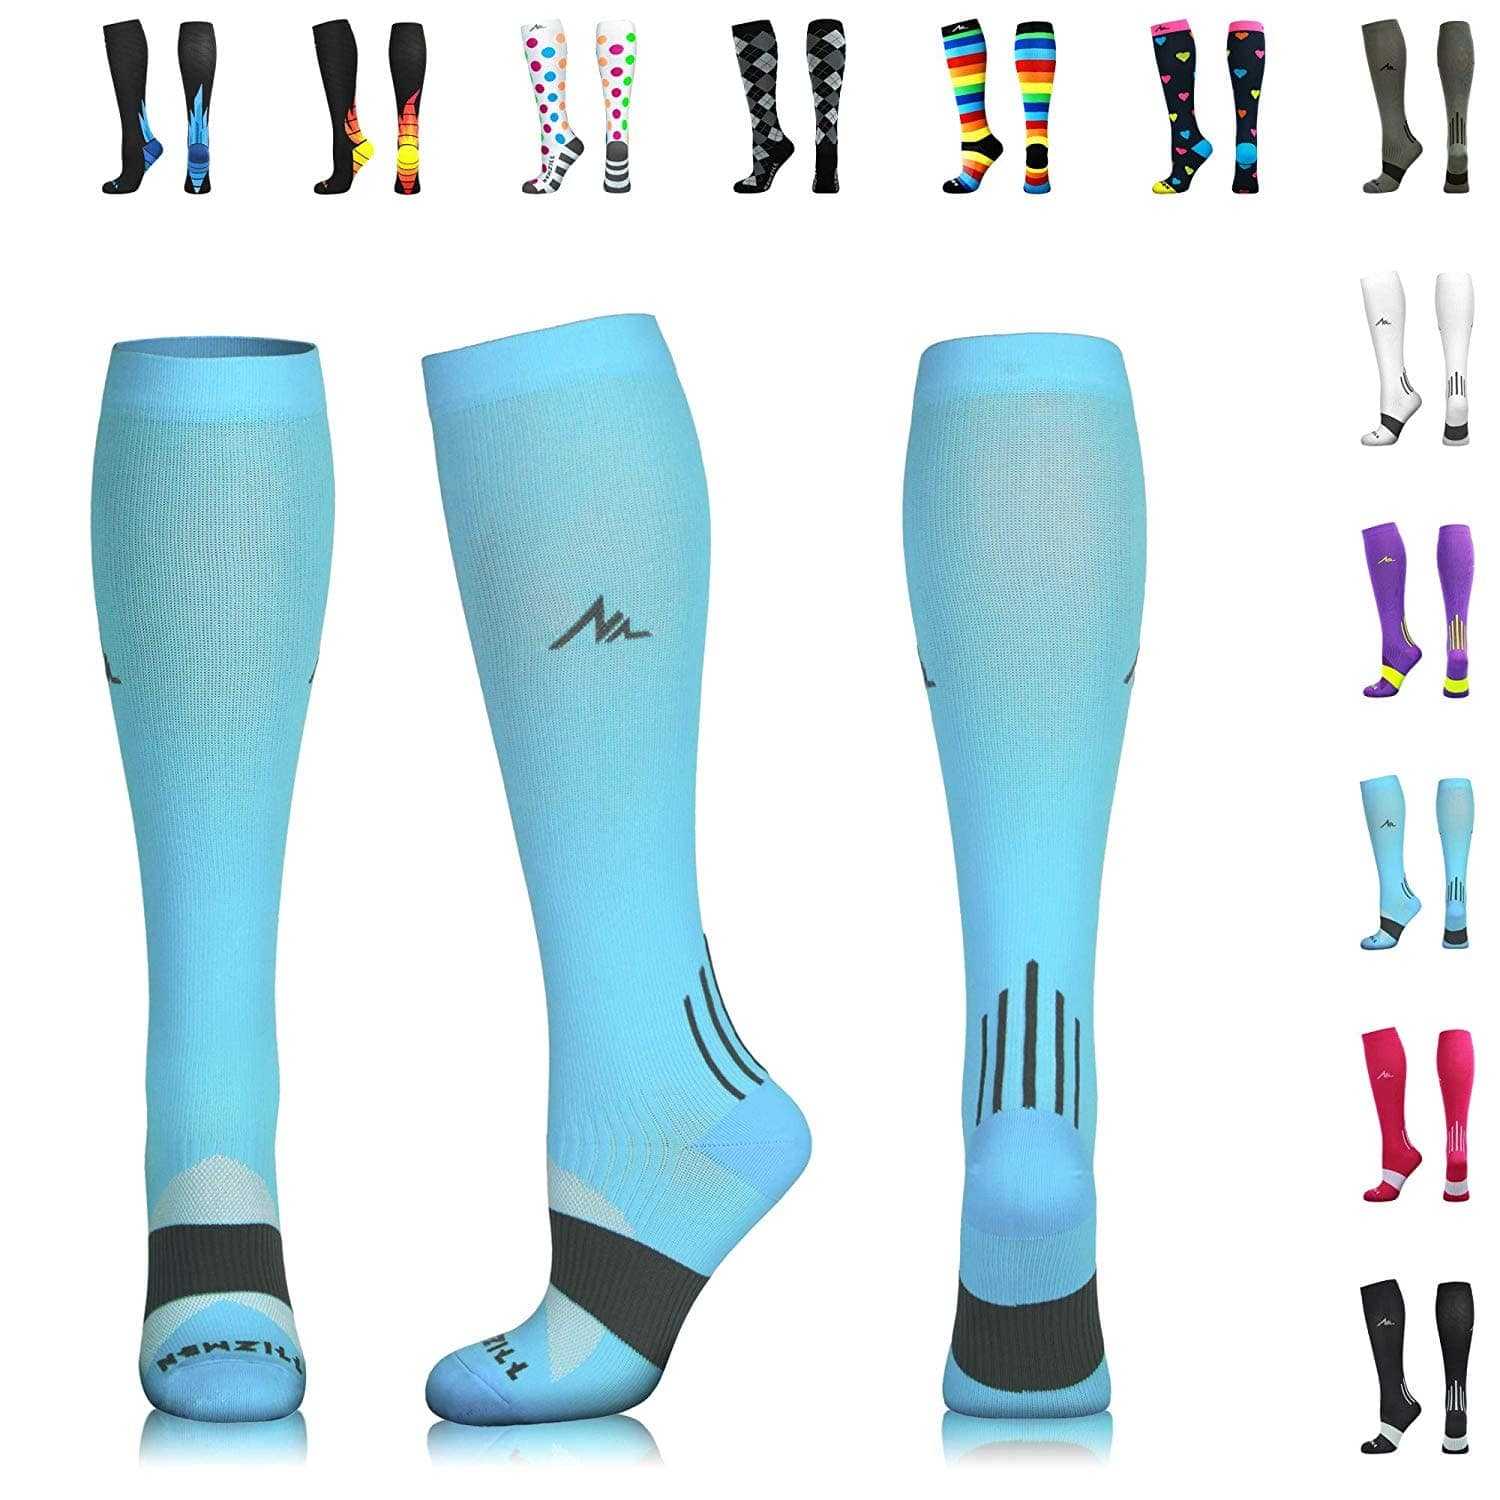 NEWZILL Compression Socks for Men & Women 20-30mmHg (U.S Olympic Fencer Recommend) $7.19 + FS w/PRIME